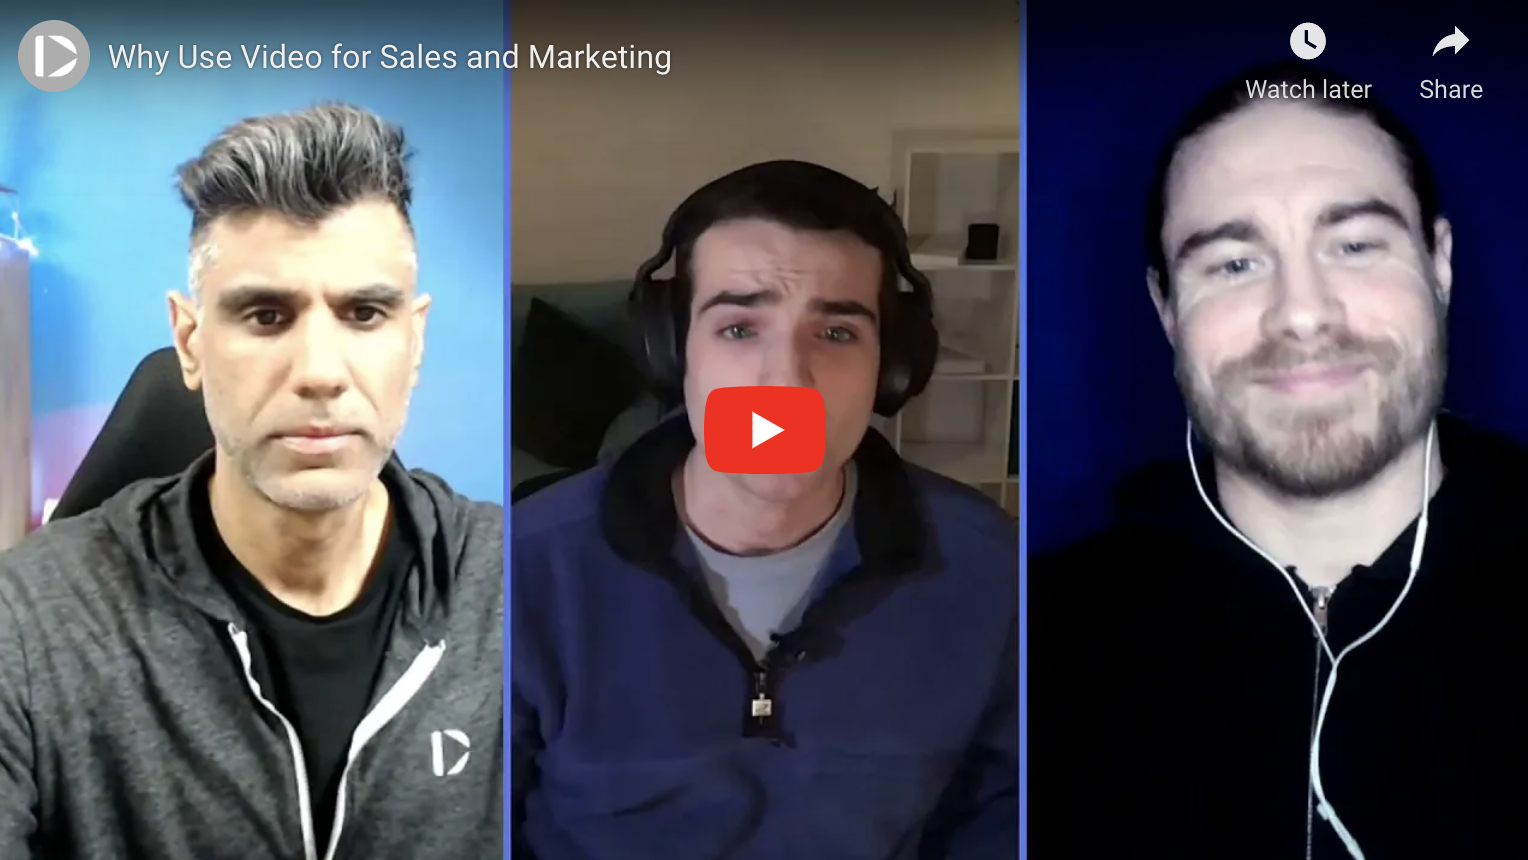 Why Use Video for Sales and Marketing